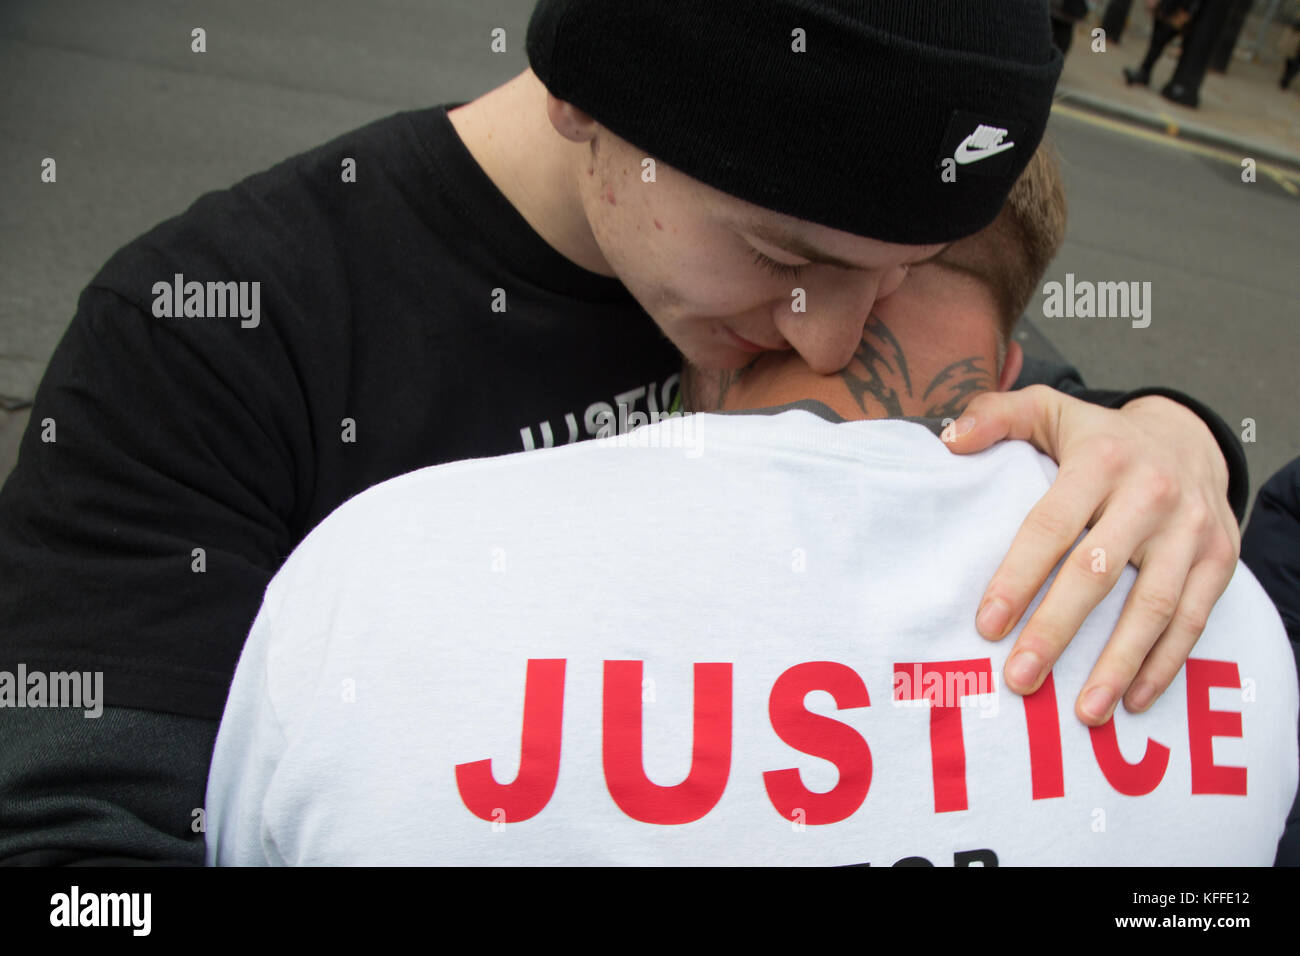 London, UK. 28th Oct, 2017. LONDON, UK 28th October 2017 A man is comforted during a demonstration to remember those - Stock Image